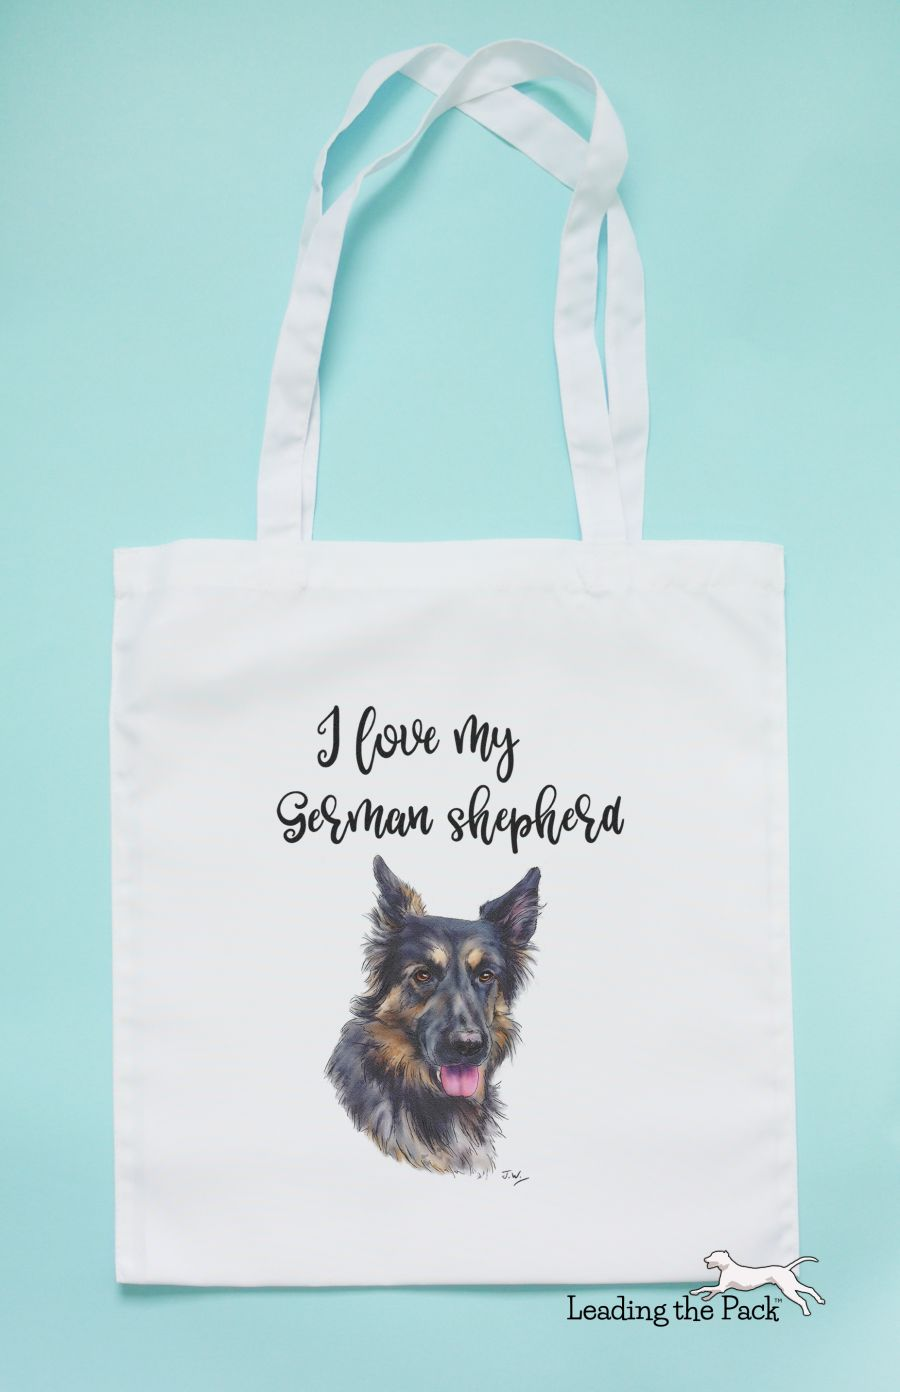 I love my German shepherd tote bag